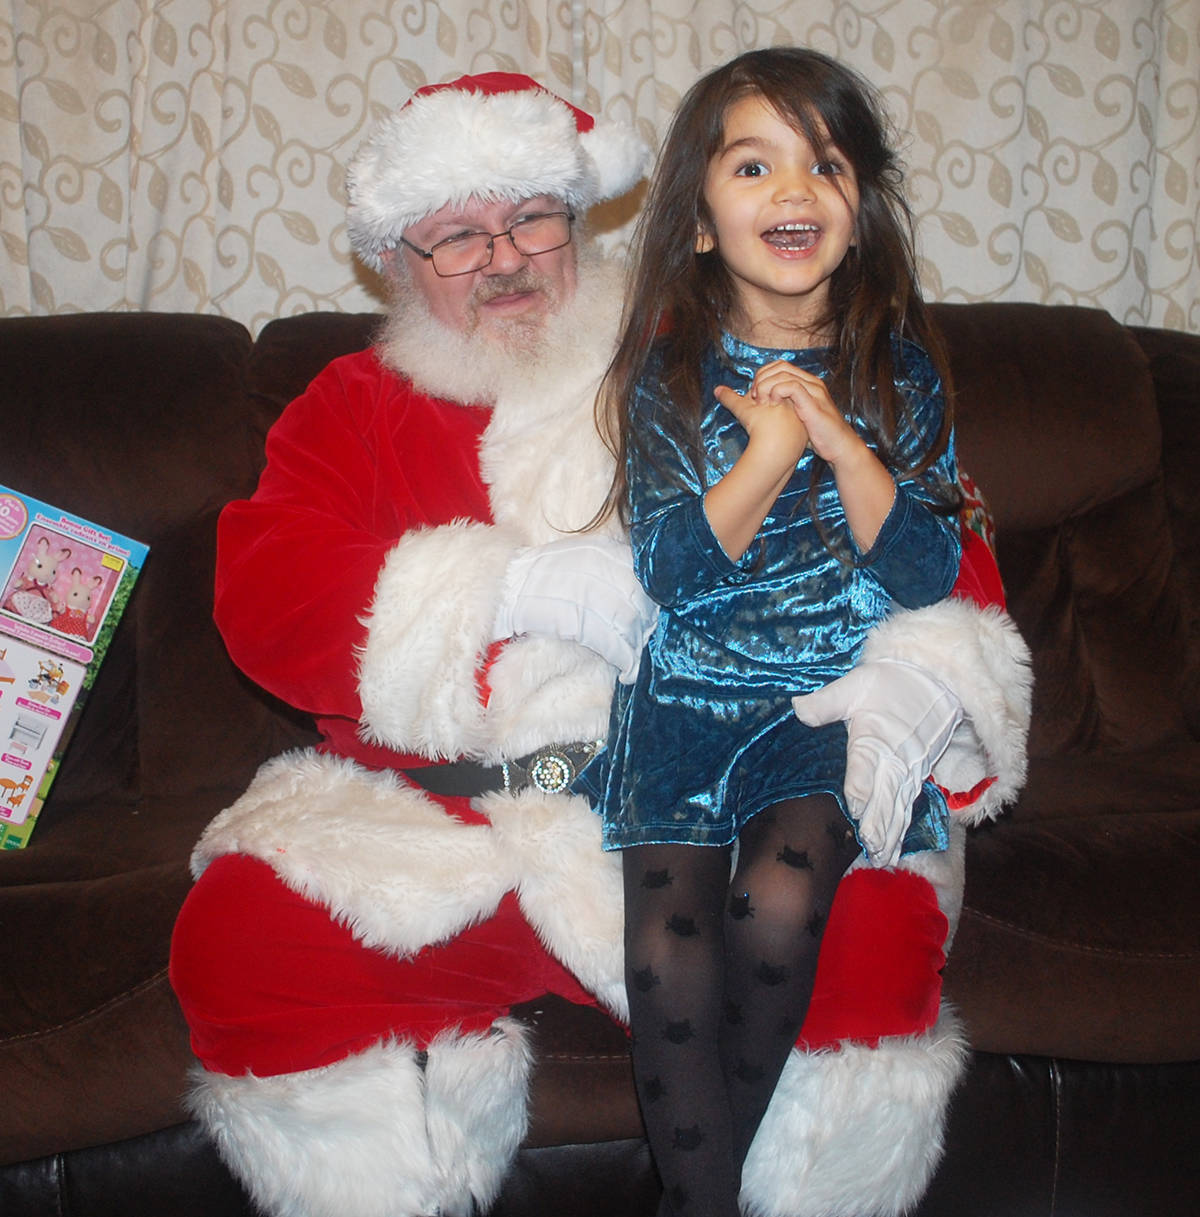 KURT LANGMANN PHOTO Santa Claus paid a special visit to Ariel Seydel and her family in her home on Saturday.